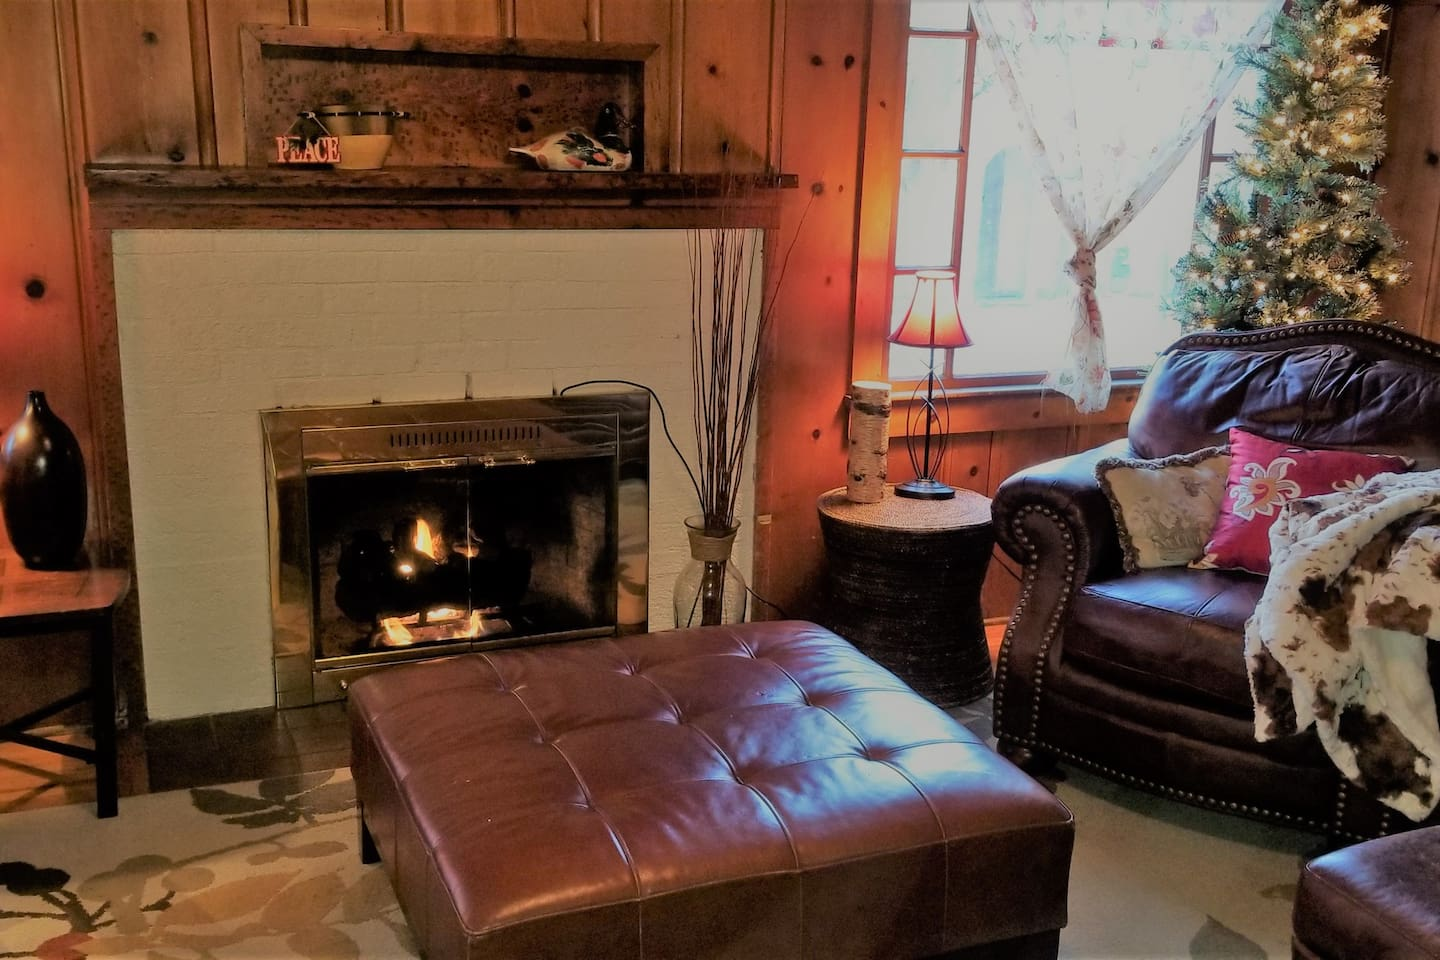 Cozy up to the Gas Log Fireplace! Living Room has amazing Ambiance! One of my absolutel favorite places and ever so charming inside!